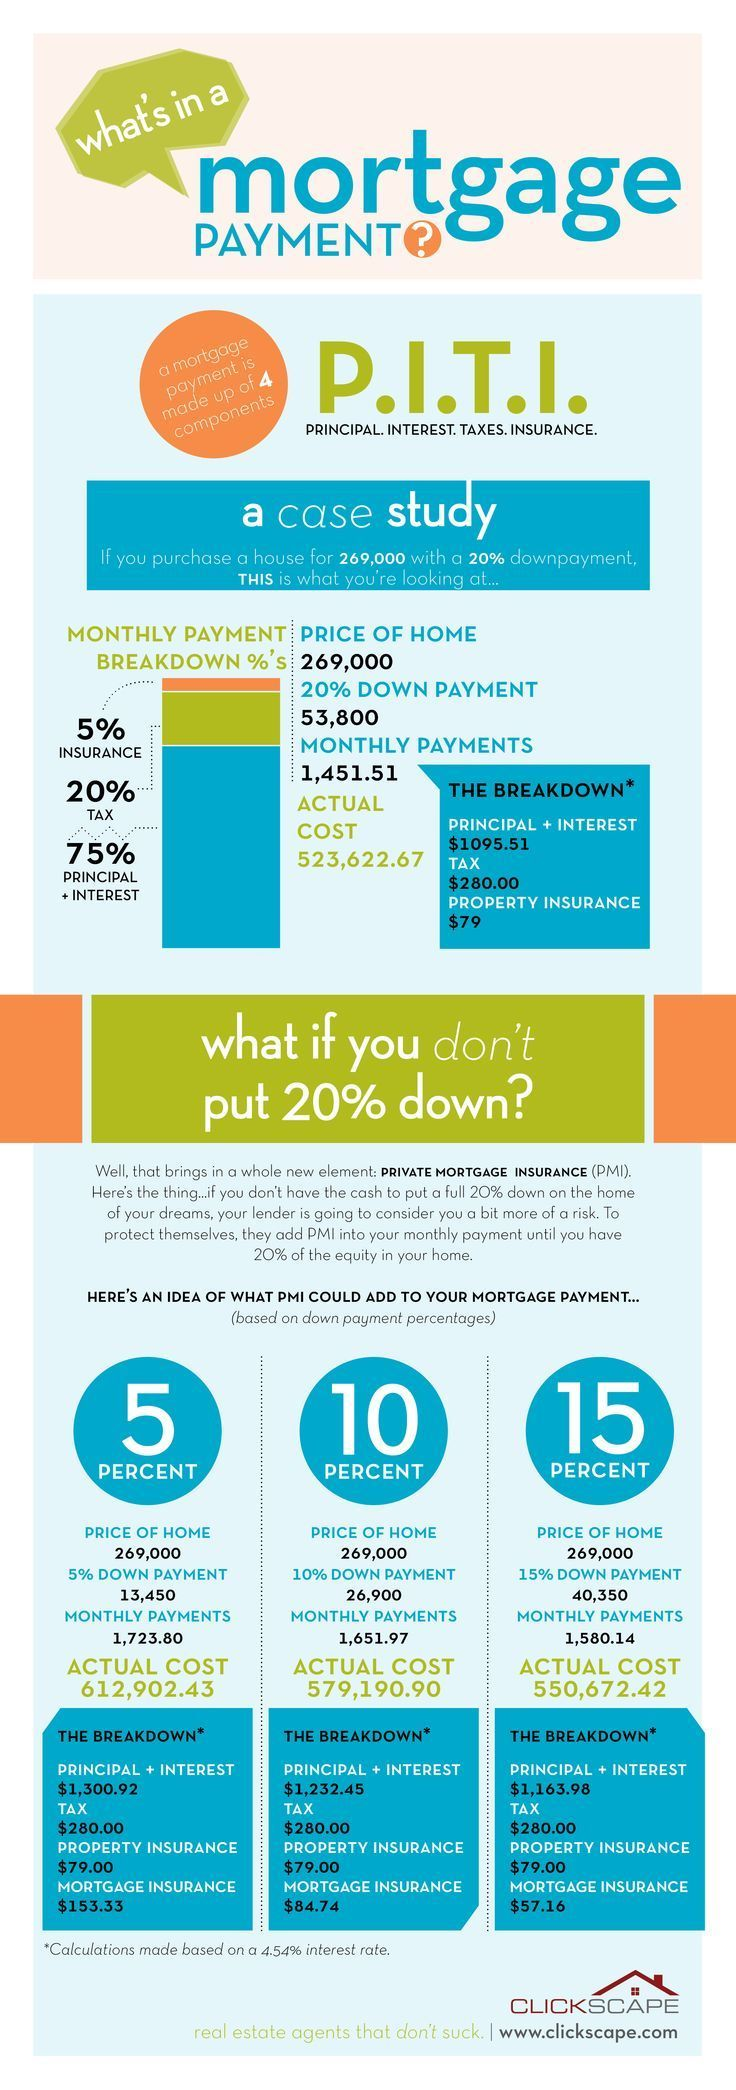 #mortgage #tips